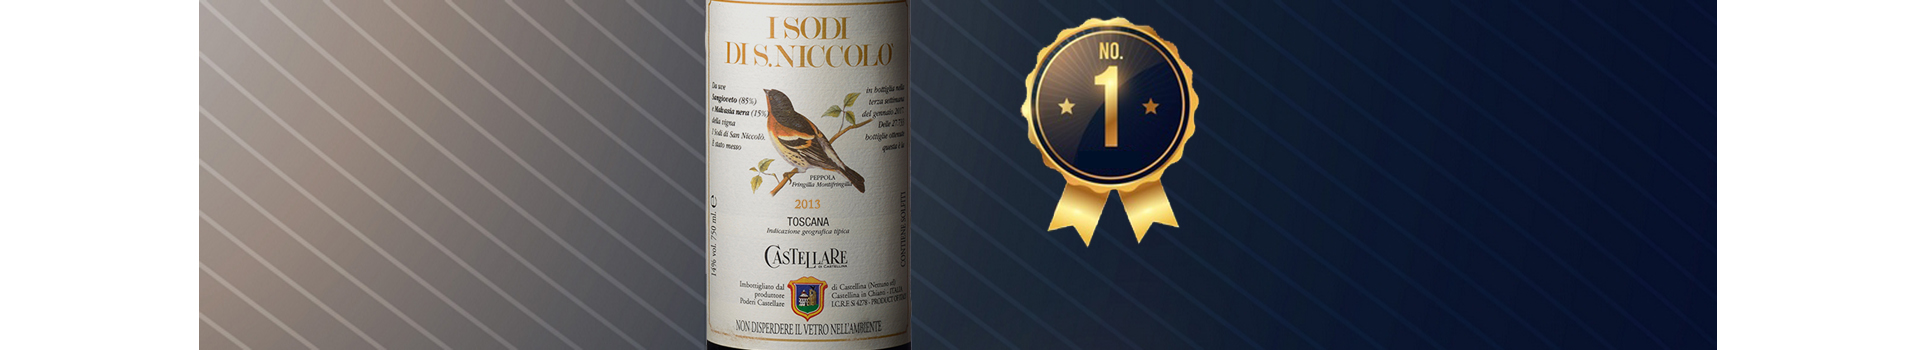 I SODI DI S. NICCOLÒ 2013 THE BEST ITALIAN RED WINE